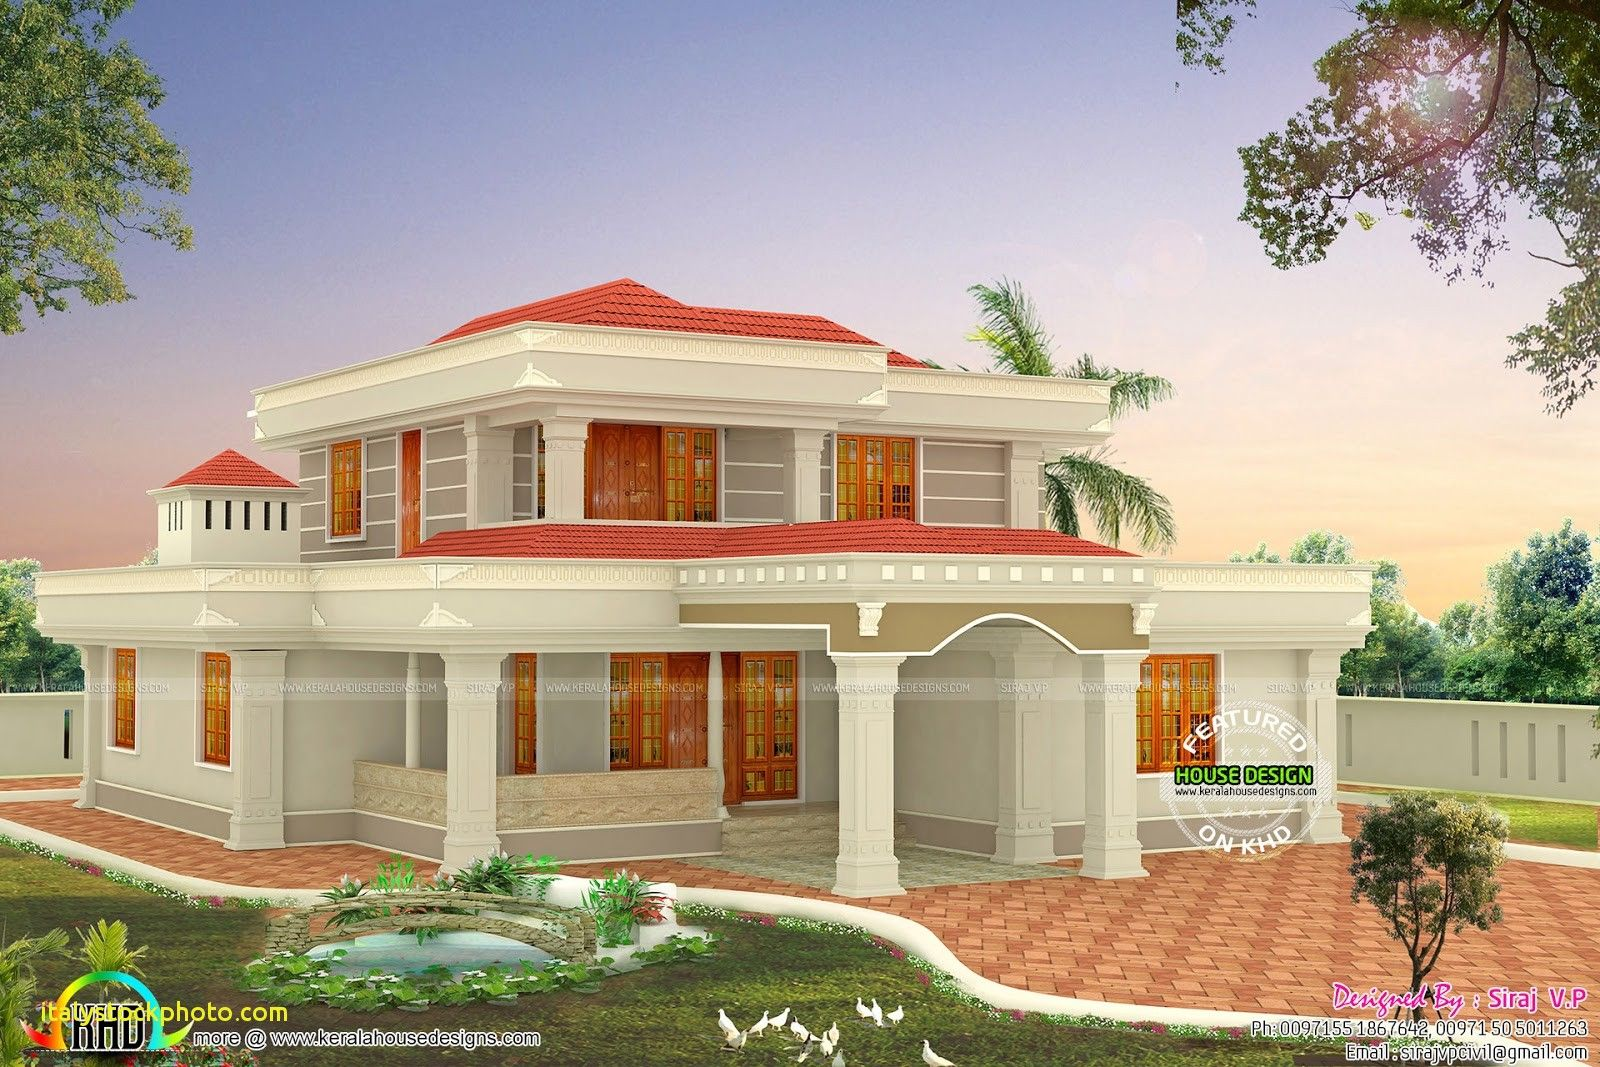 Best Small House Designs In India House For Rent Near Me Housedesign Housedesigns Smallho Kerala House Design Cool House Designs Modern House Floor Plans